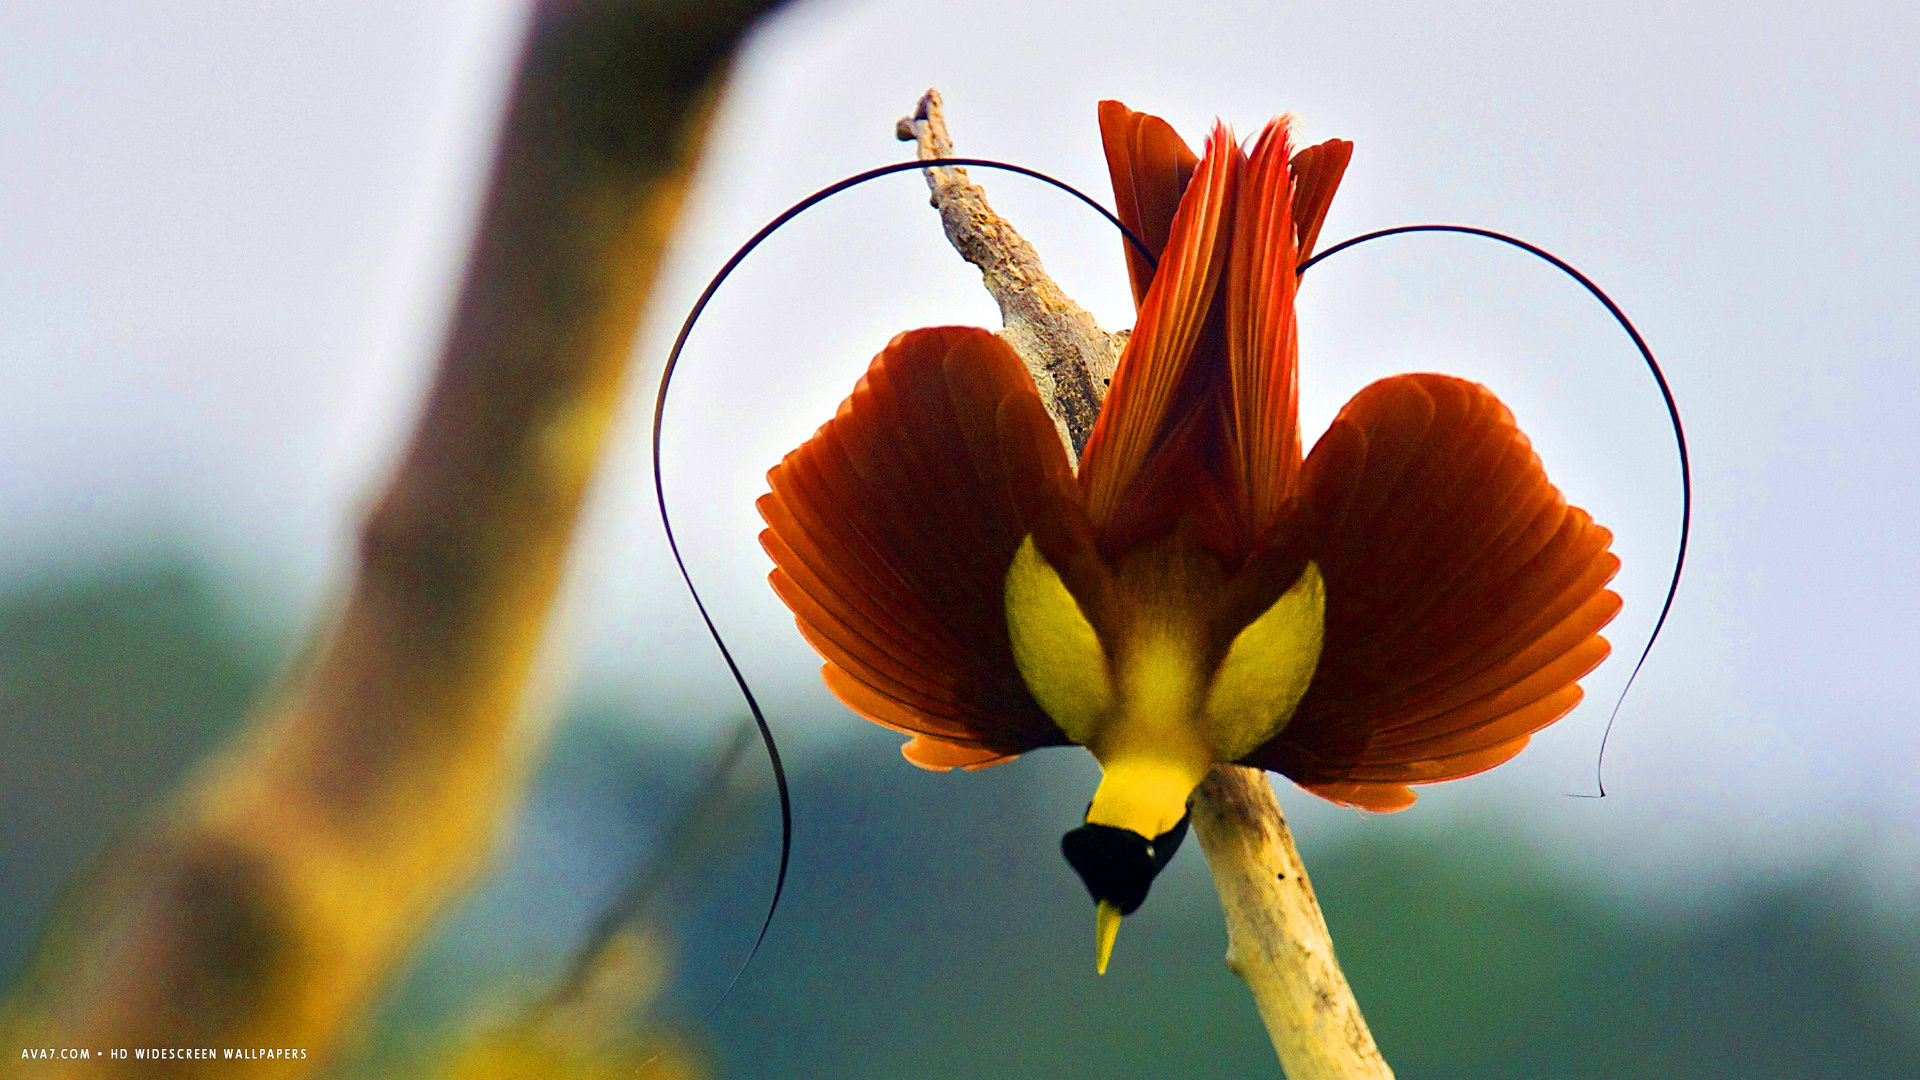 Bird of Paradise Wallpapers | HD Wallpapers